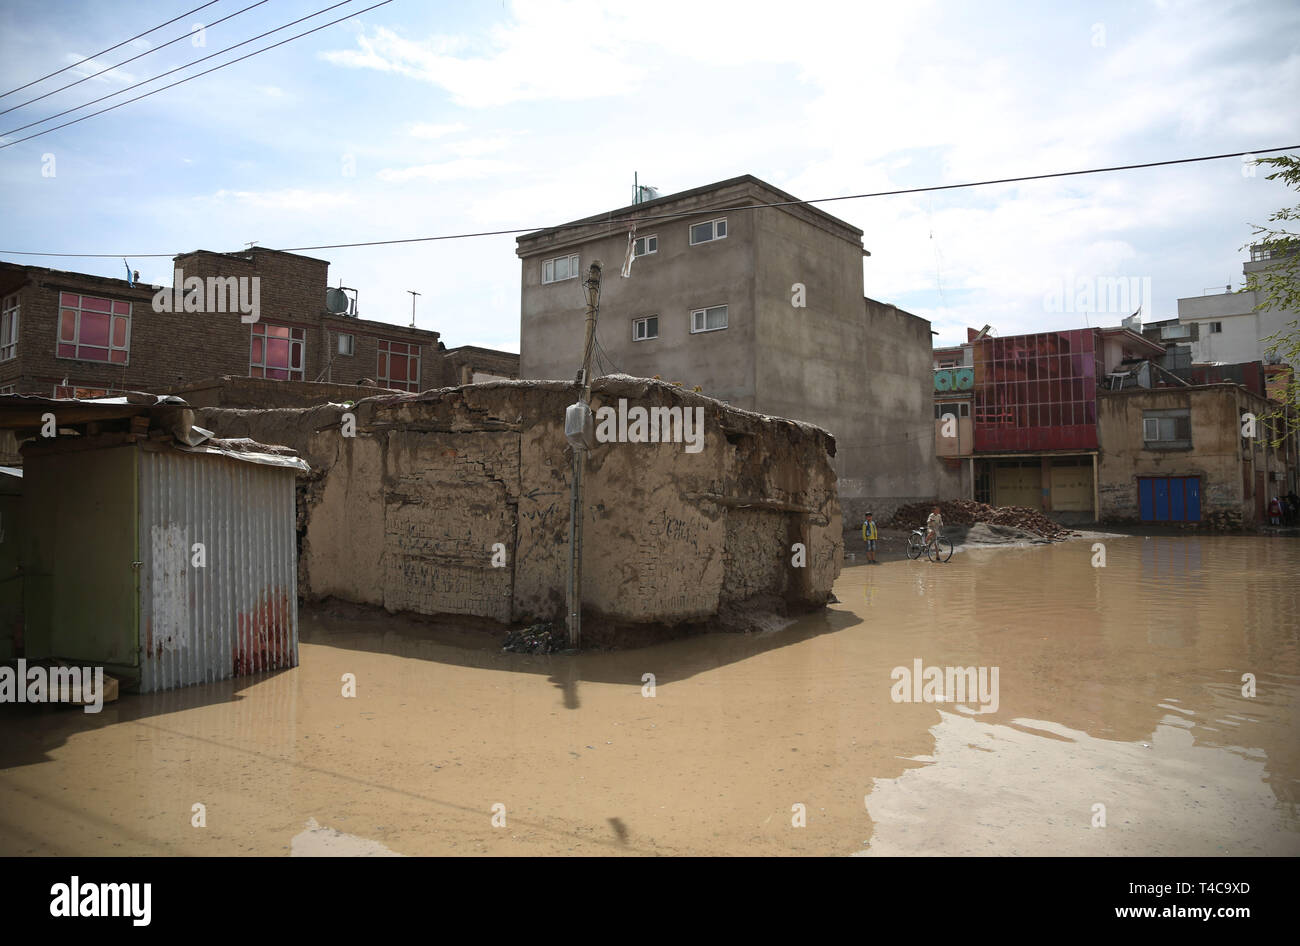 Kabul, Afghanistan. 16th Apr, 2019. Photo taken on April 16, 2019 shows houses surrounded by flood in Kabul, capital of Afghanistan. One person has been reported dead after the Kabul river flooded in the country's capital, where the government issued a warning asking people to leave flood-prone areas and houses located at the two banks of the river, as the rising overflow was uncontrollable. Credit: Rahmat Alizadah/Xinhua/Alamy Live News - Stock Image